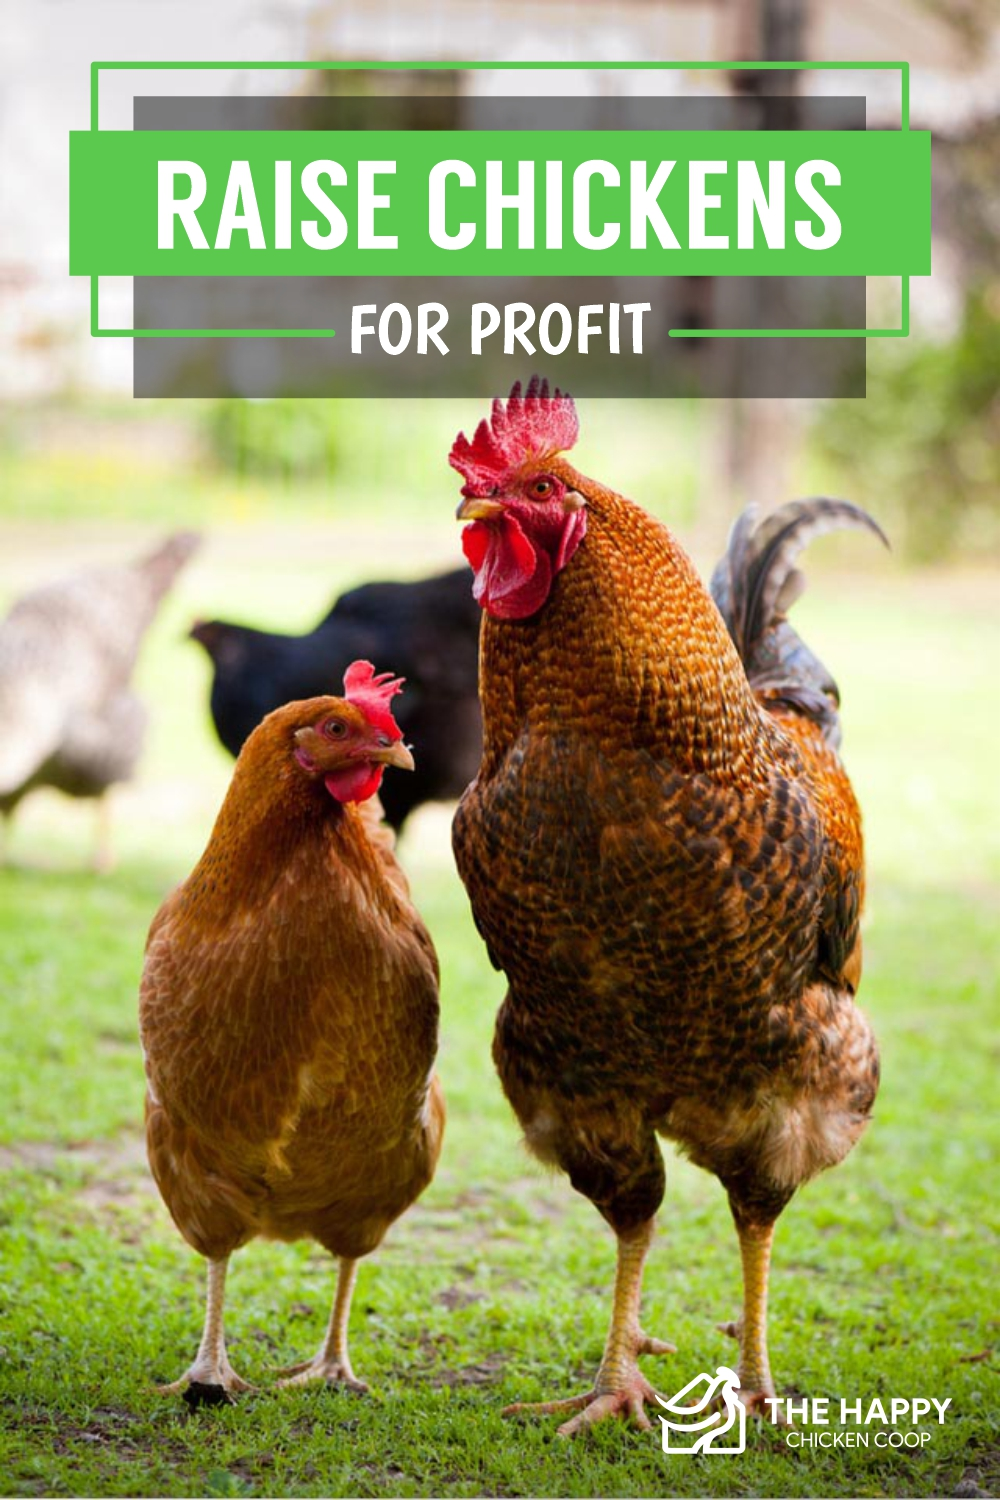 Raise Chickens for Profit